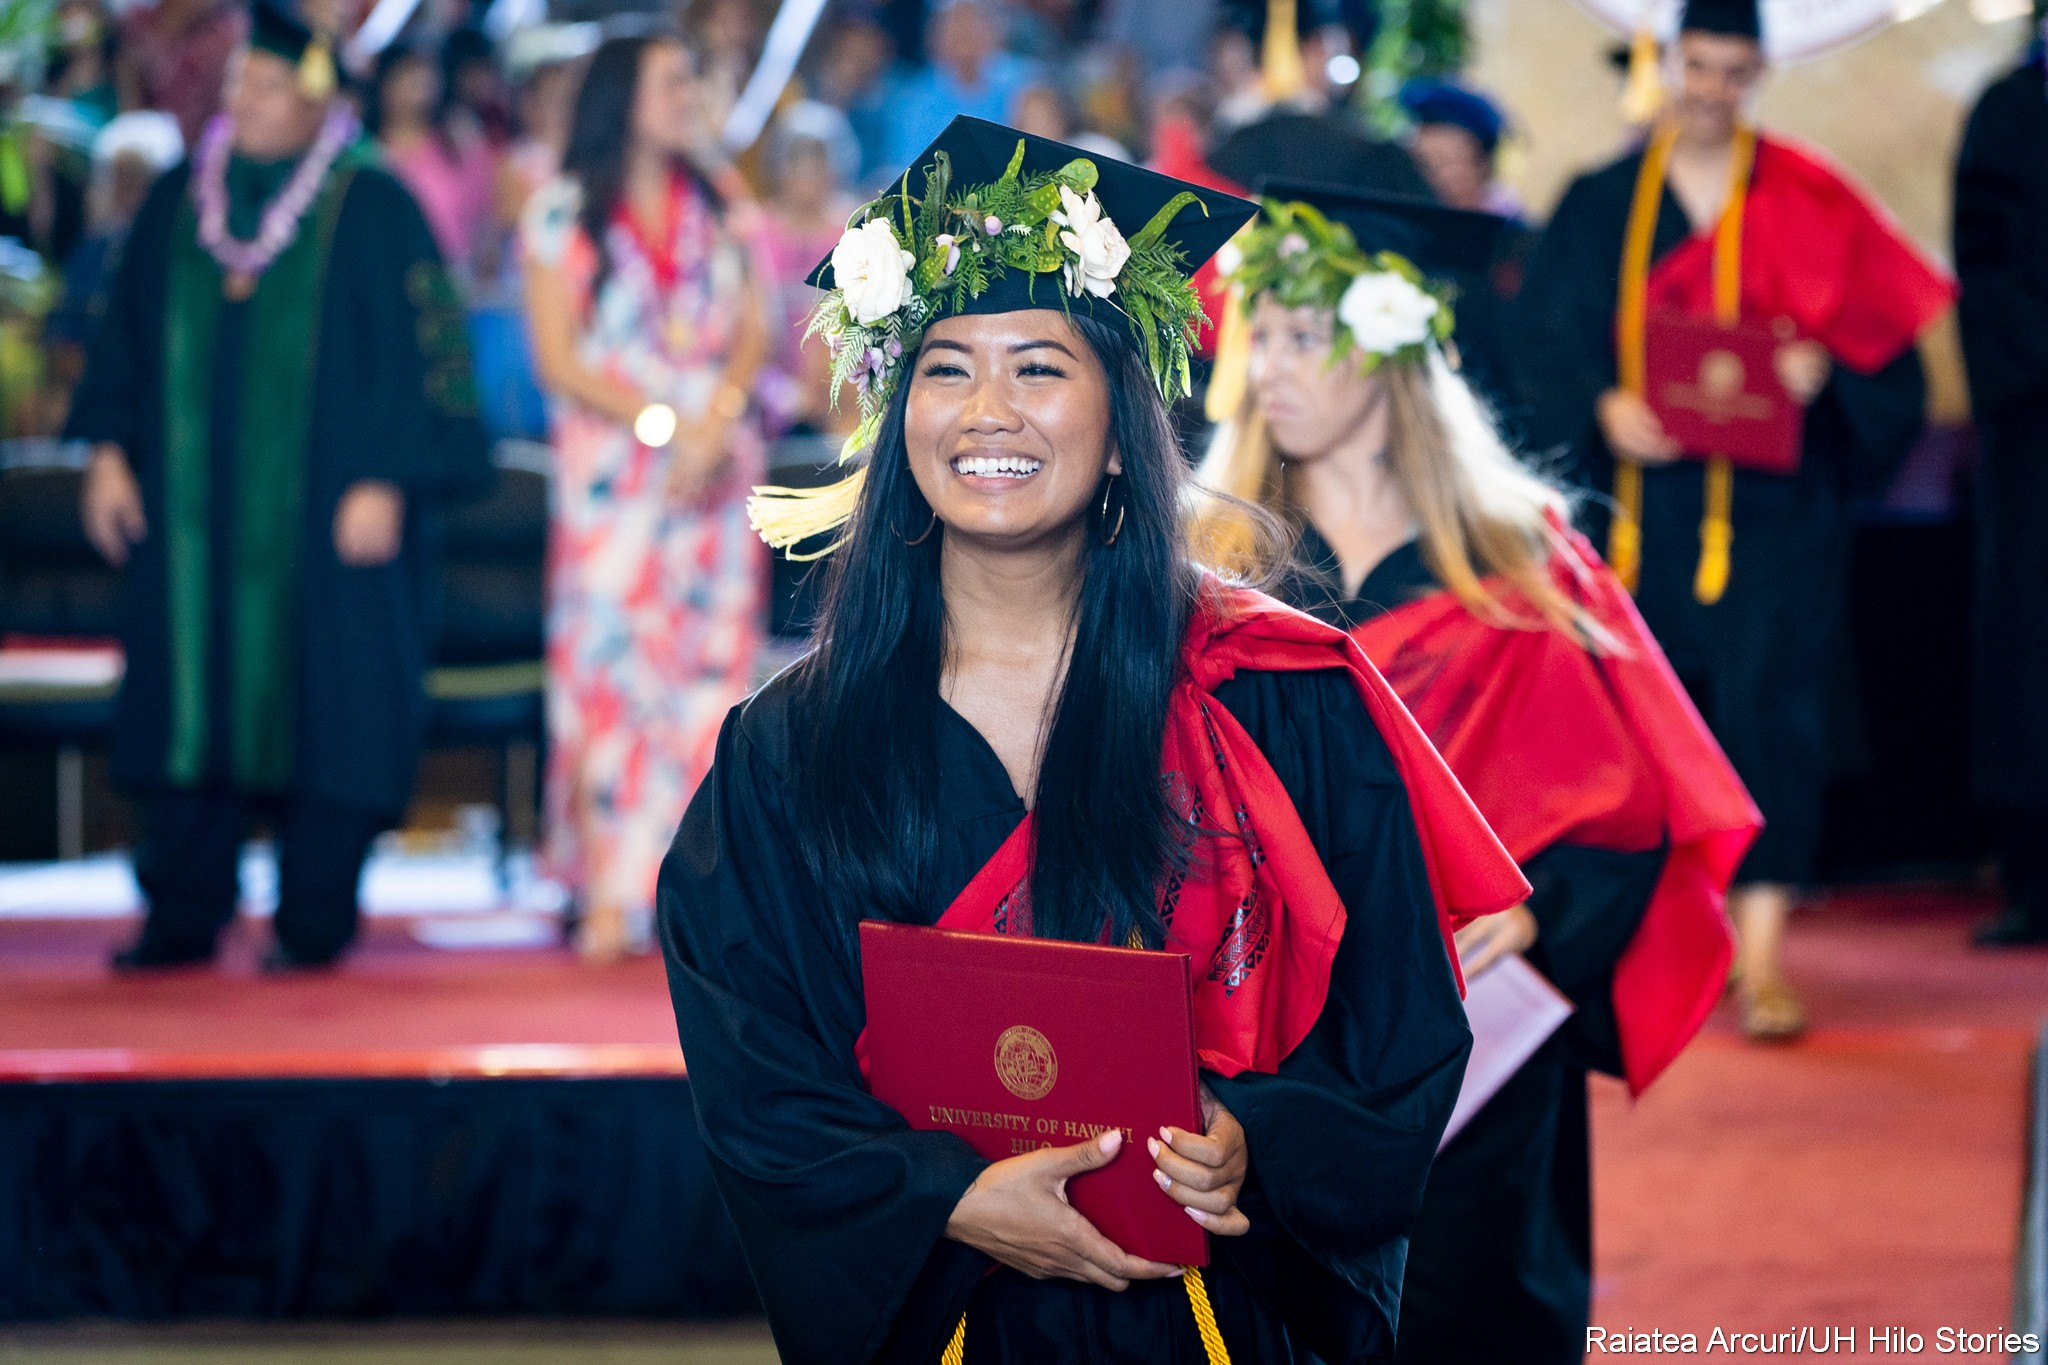 Graduate with head lei leaving dais with diploma in hand.